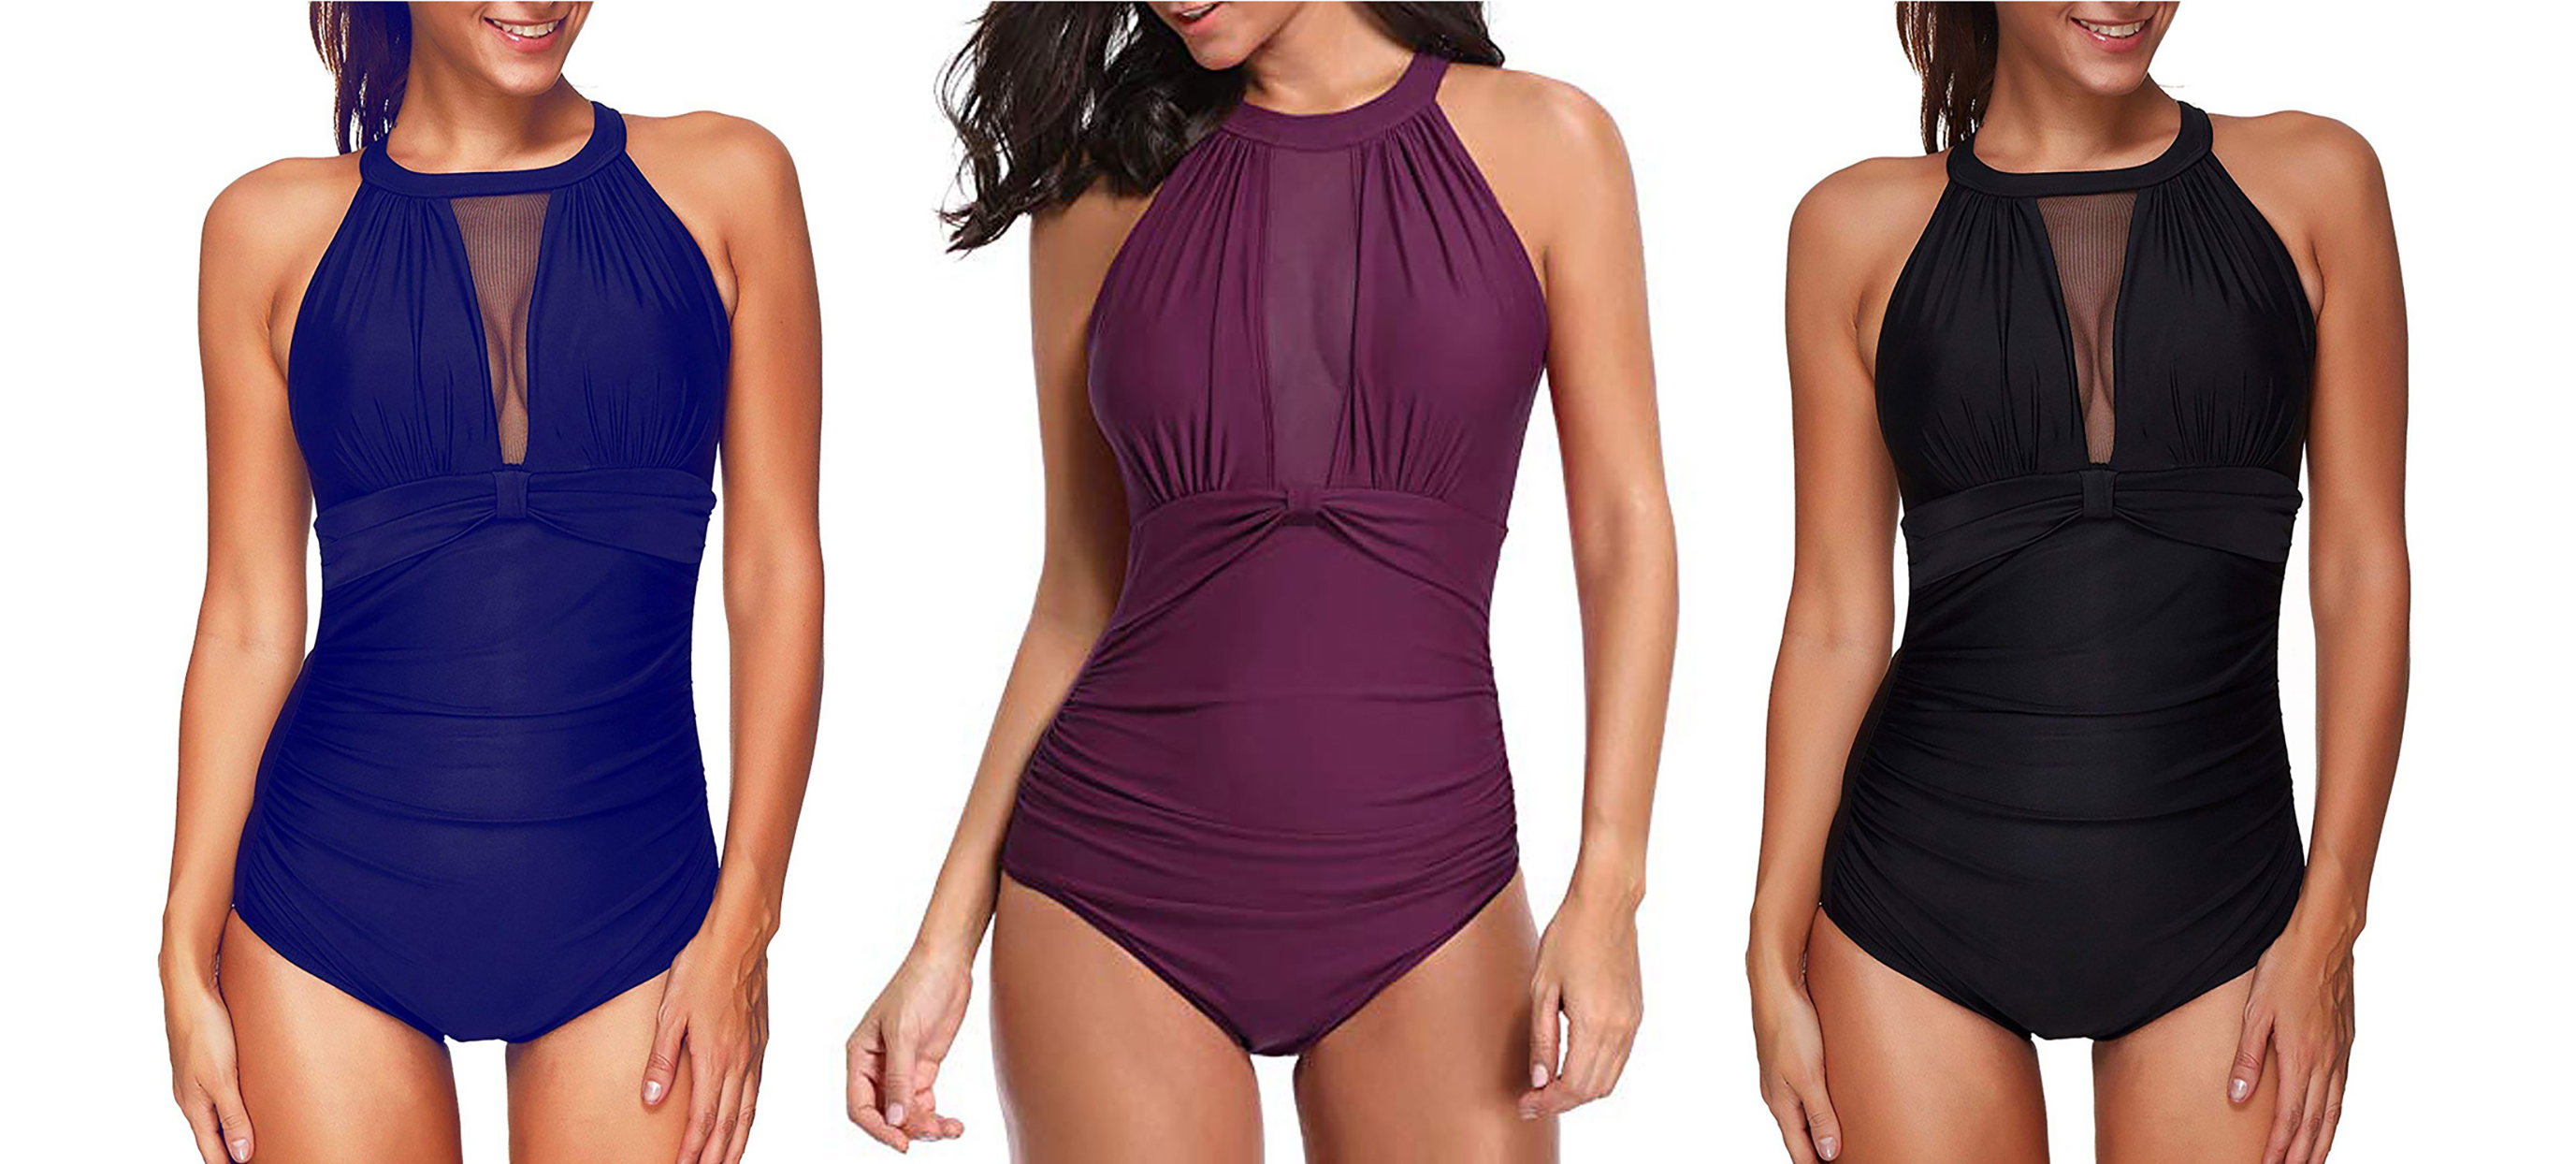 Amazon Shoppers Are Making This $25 Size-Inclusive Swimsuit Go Viral